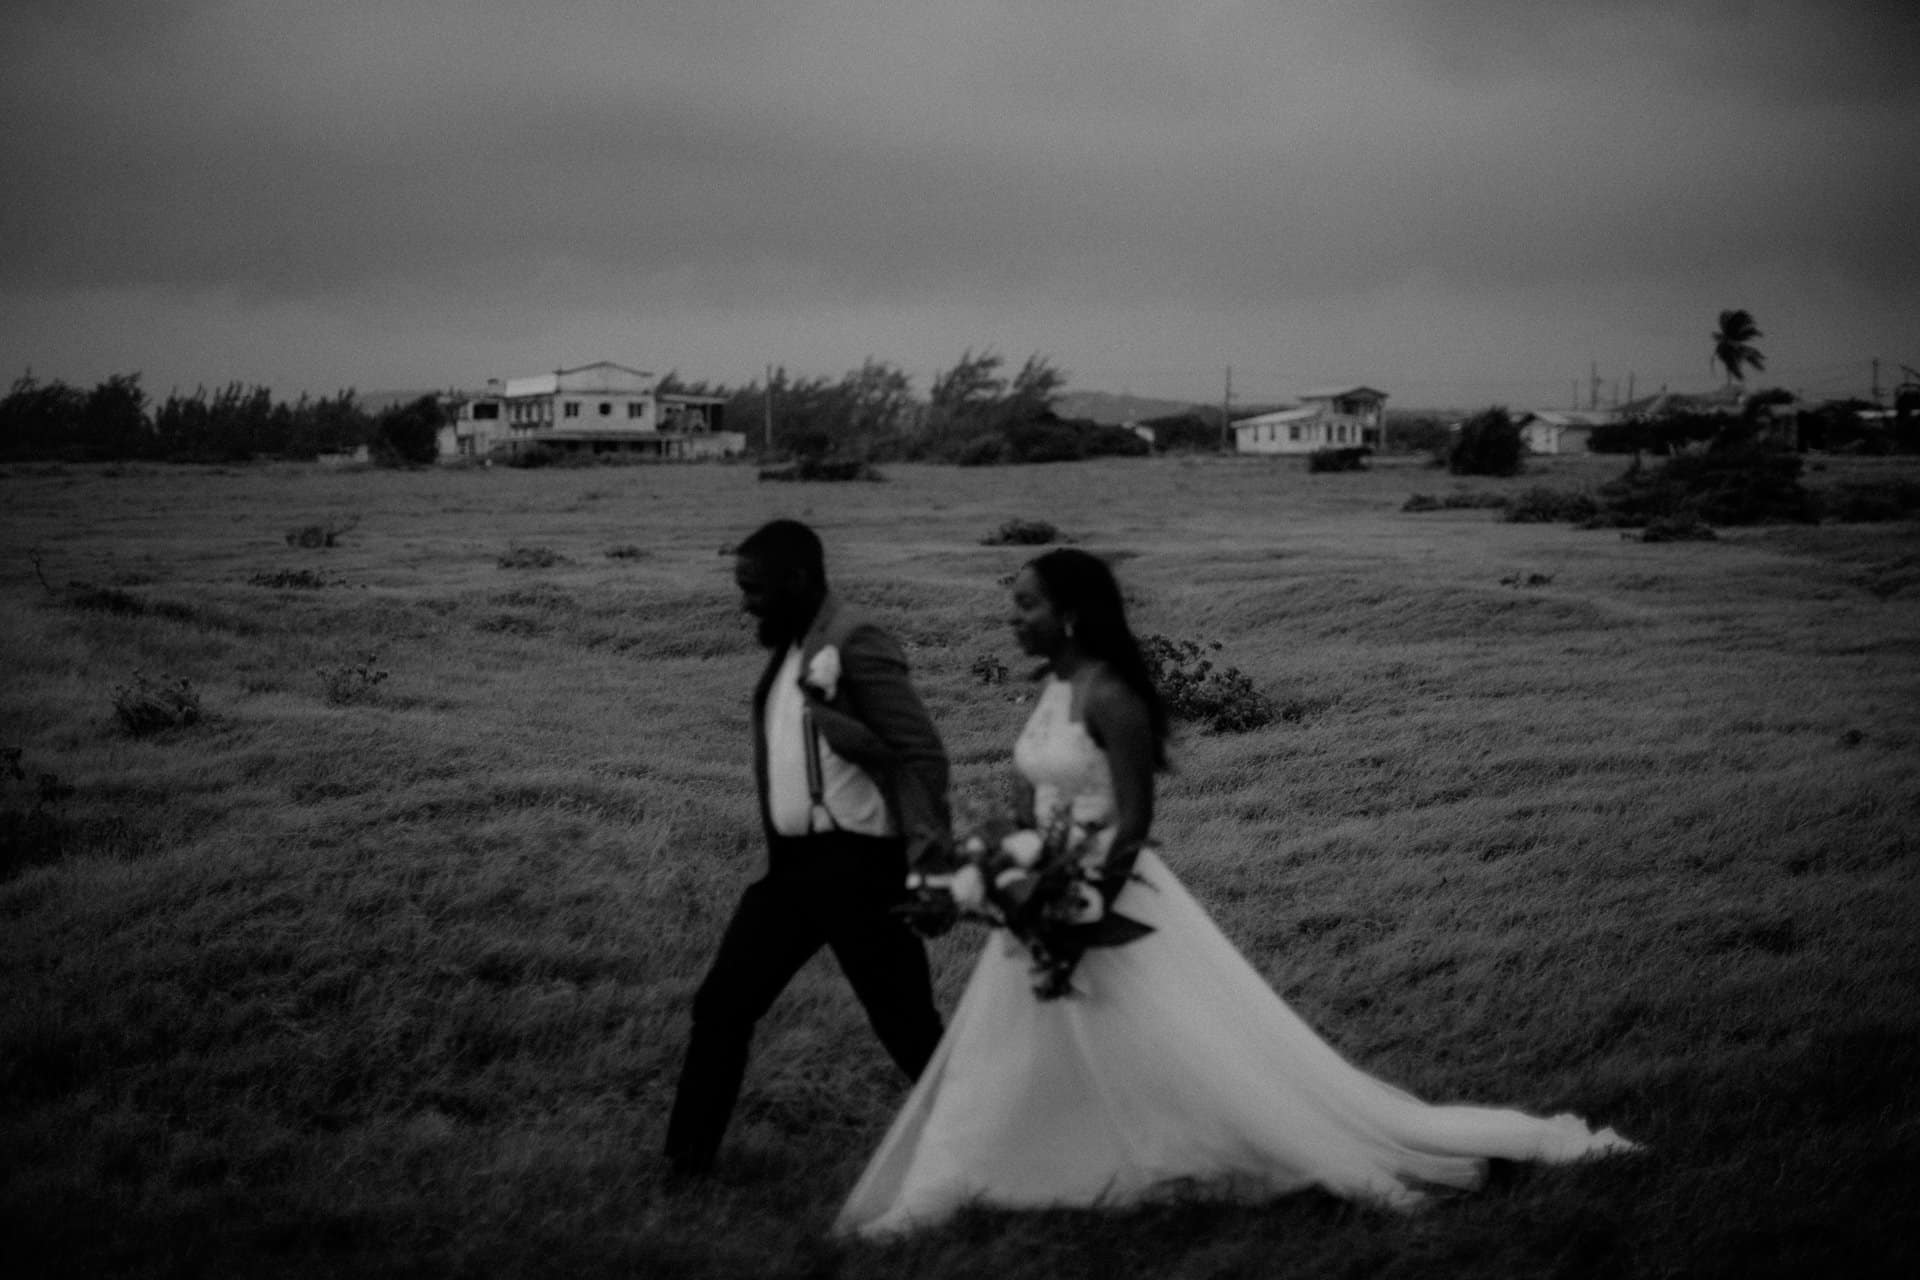 The wedding couples walking through a meadow.